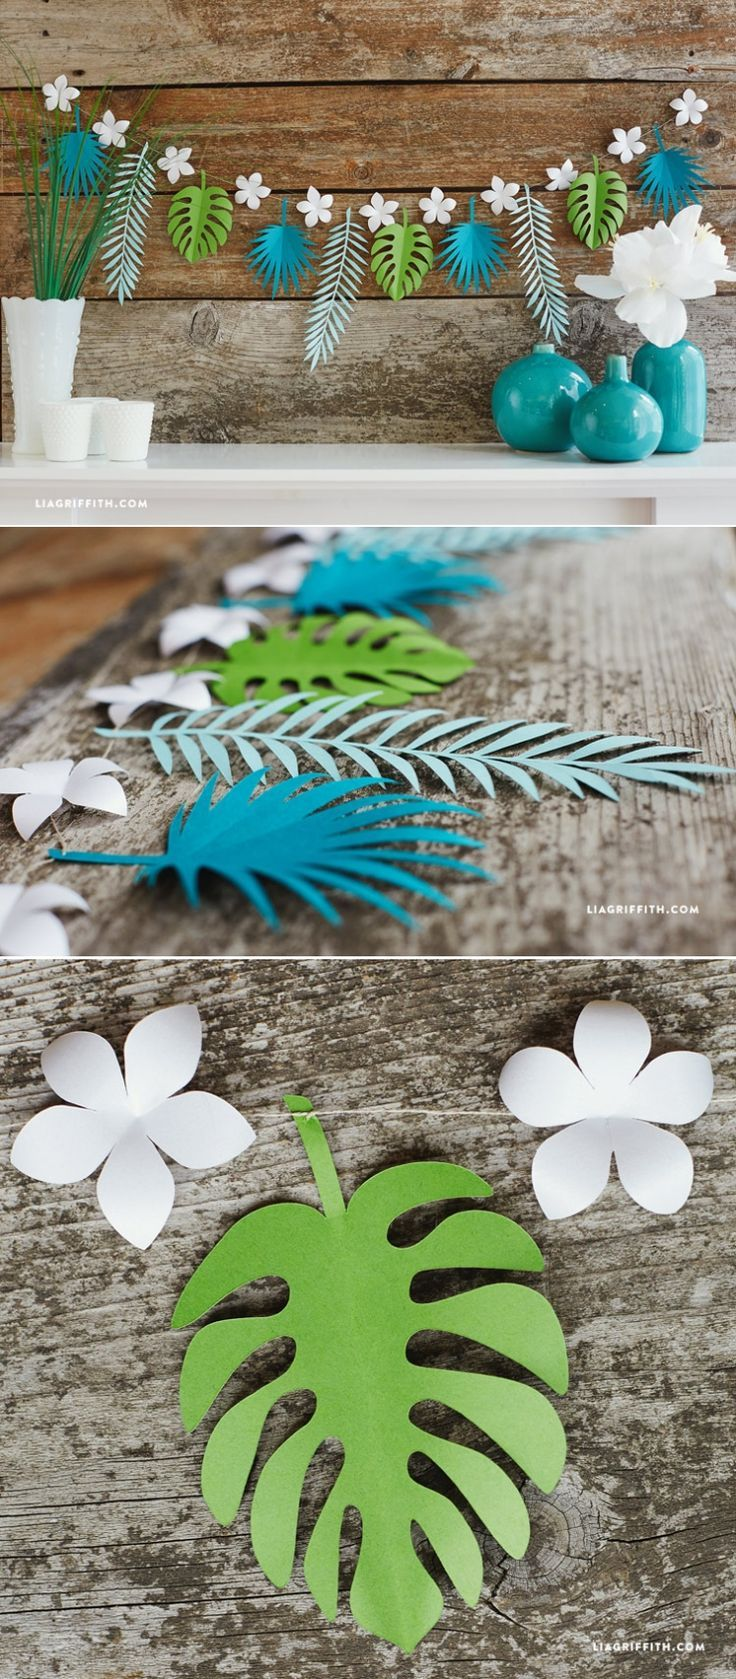 #Tropical #PaperGarland - #Luauparty www.LiaGriffith.com